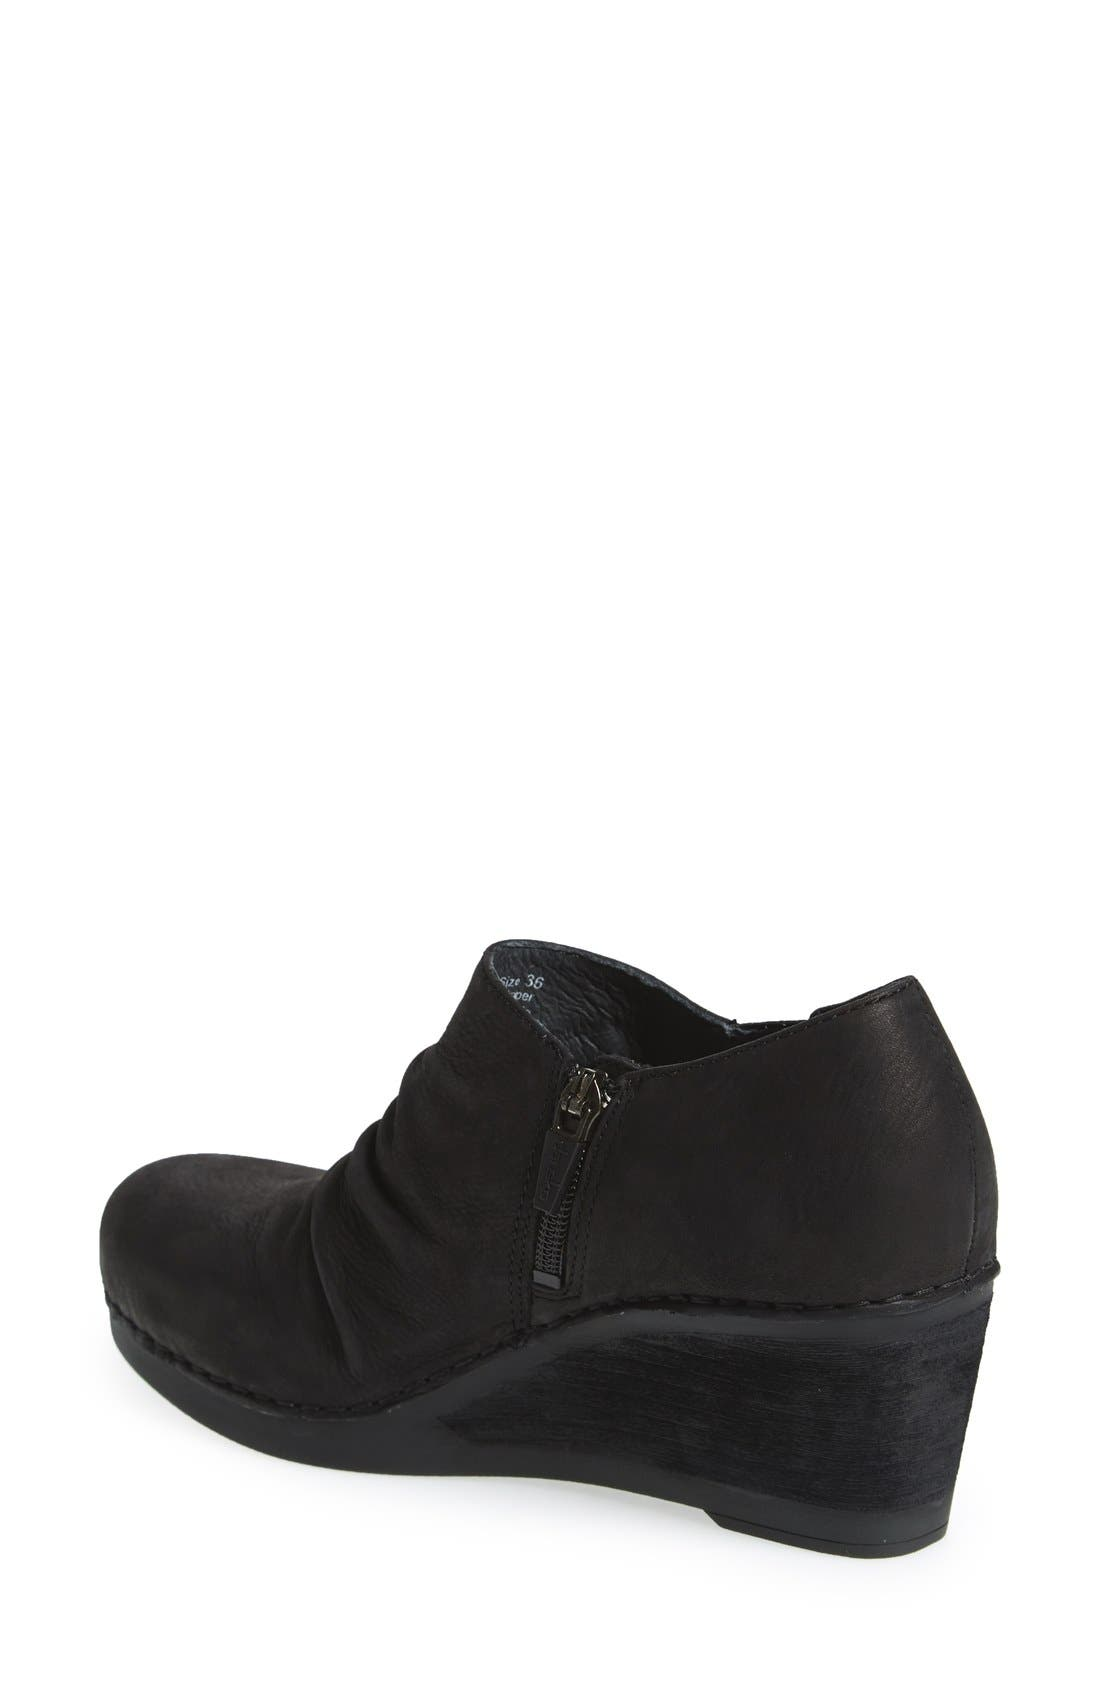 'Sheena' Slouchy Wedge Bootie,                             Alternate thumbnail 2, color,                             Black Nubuck Leather